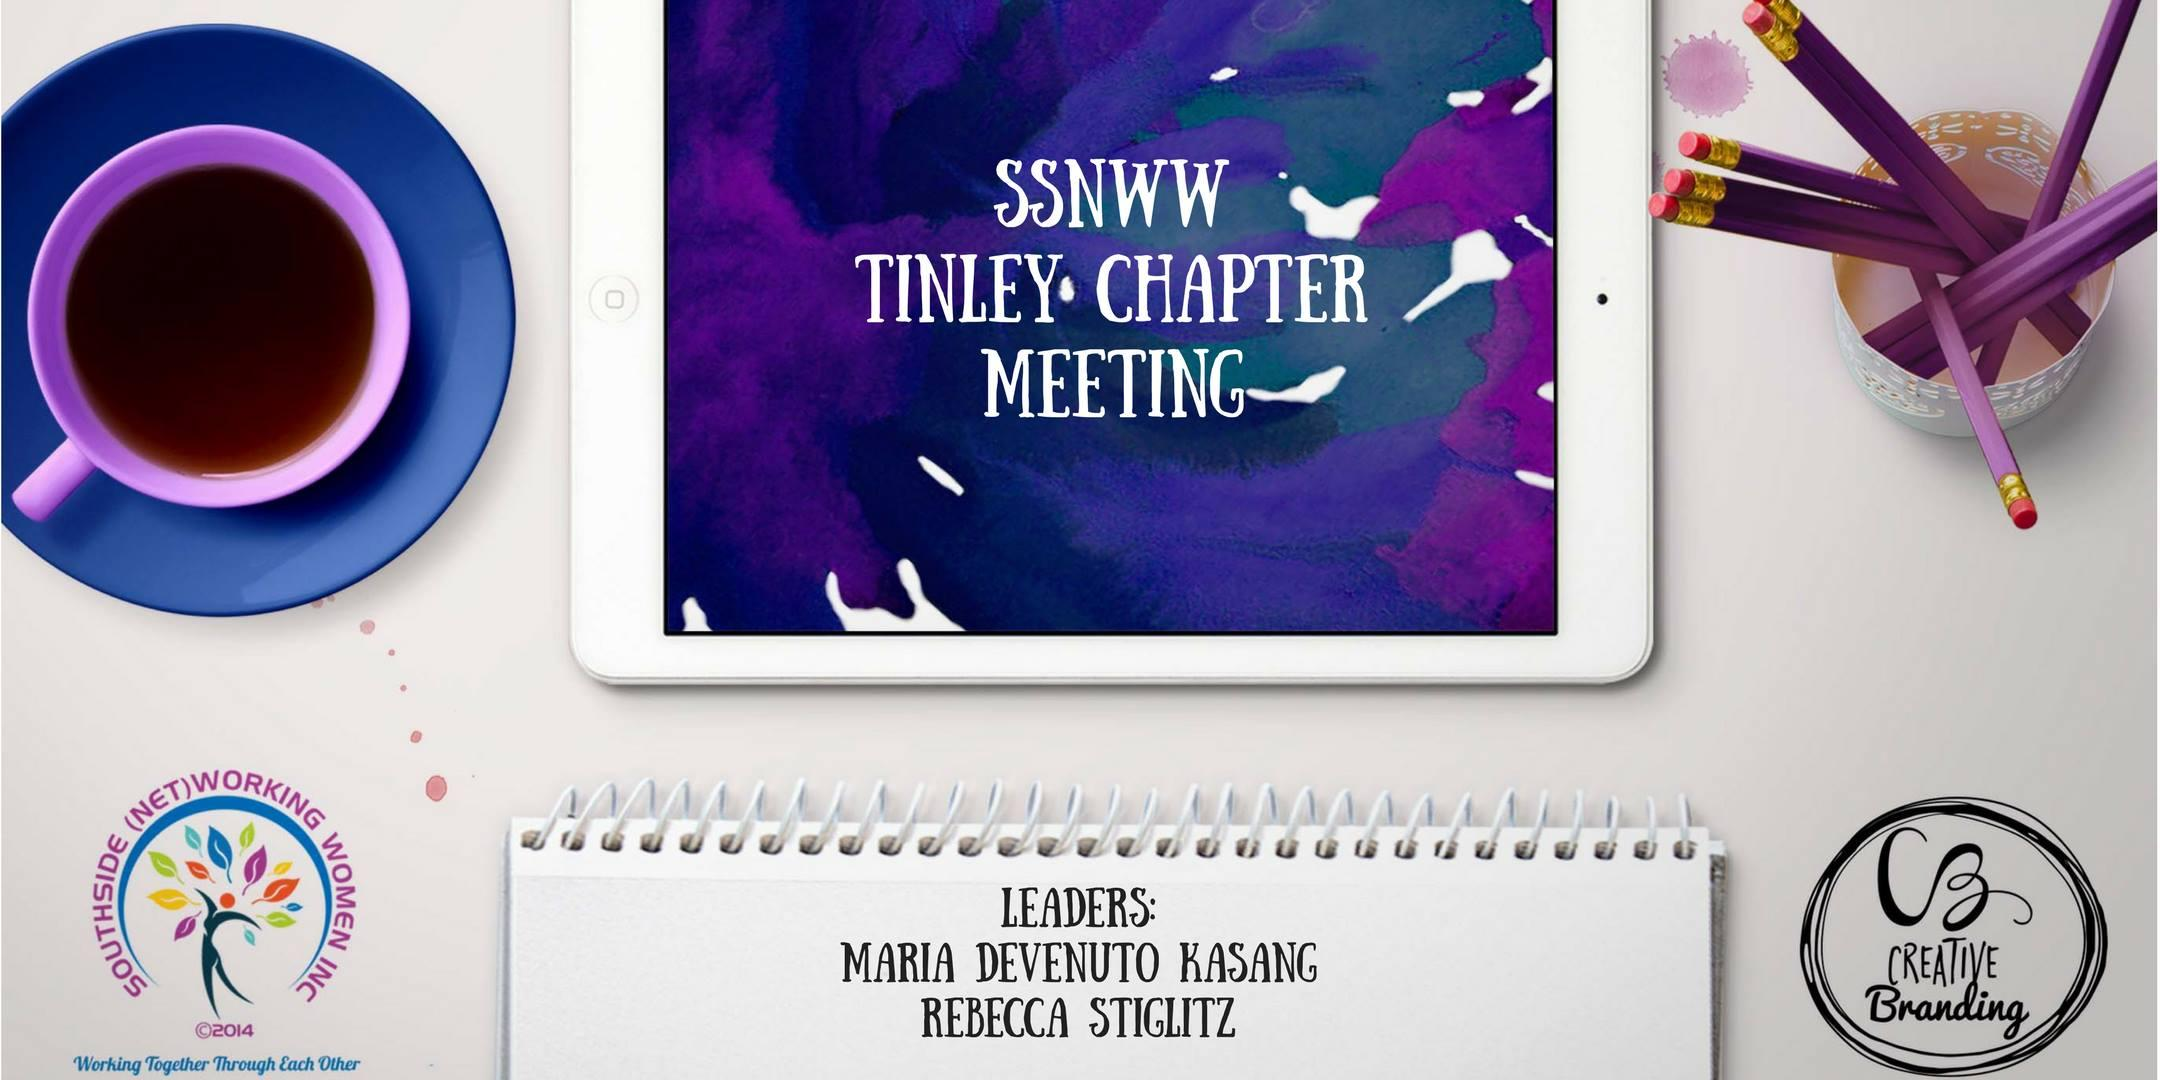 SSNW - Tinley Park Chapter